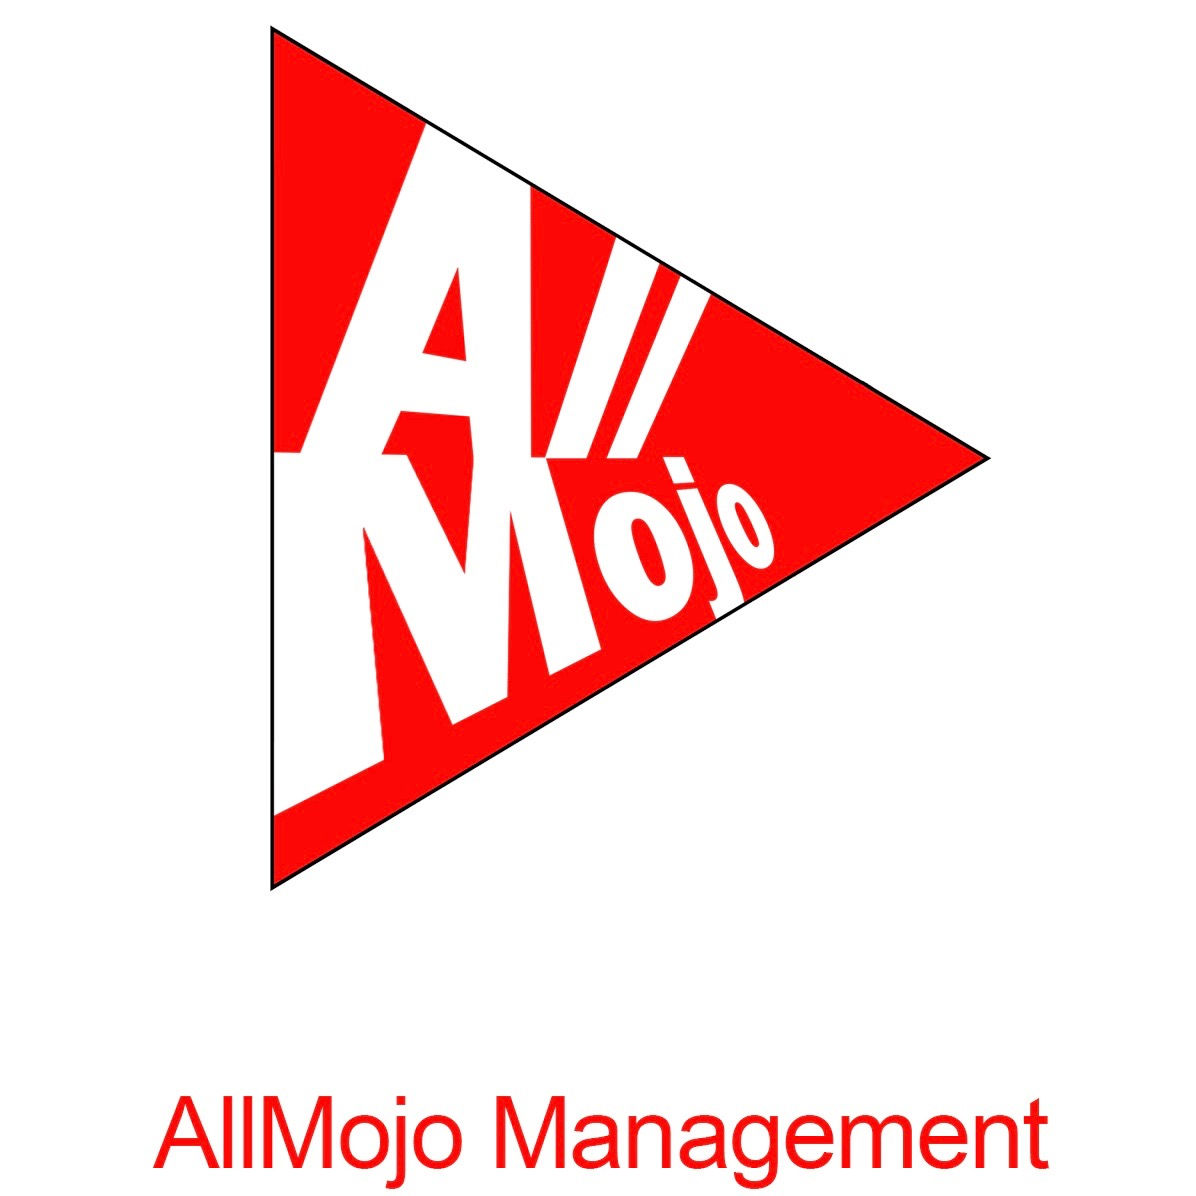 AllMojo Management